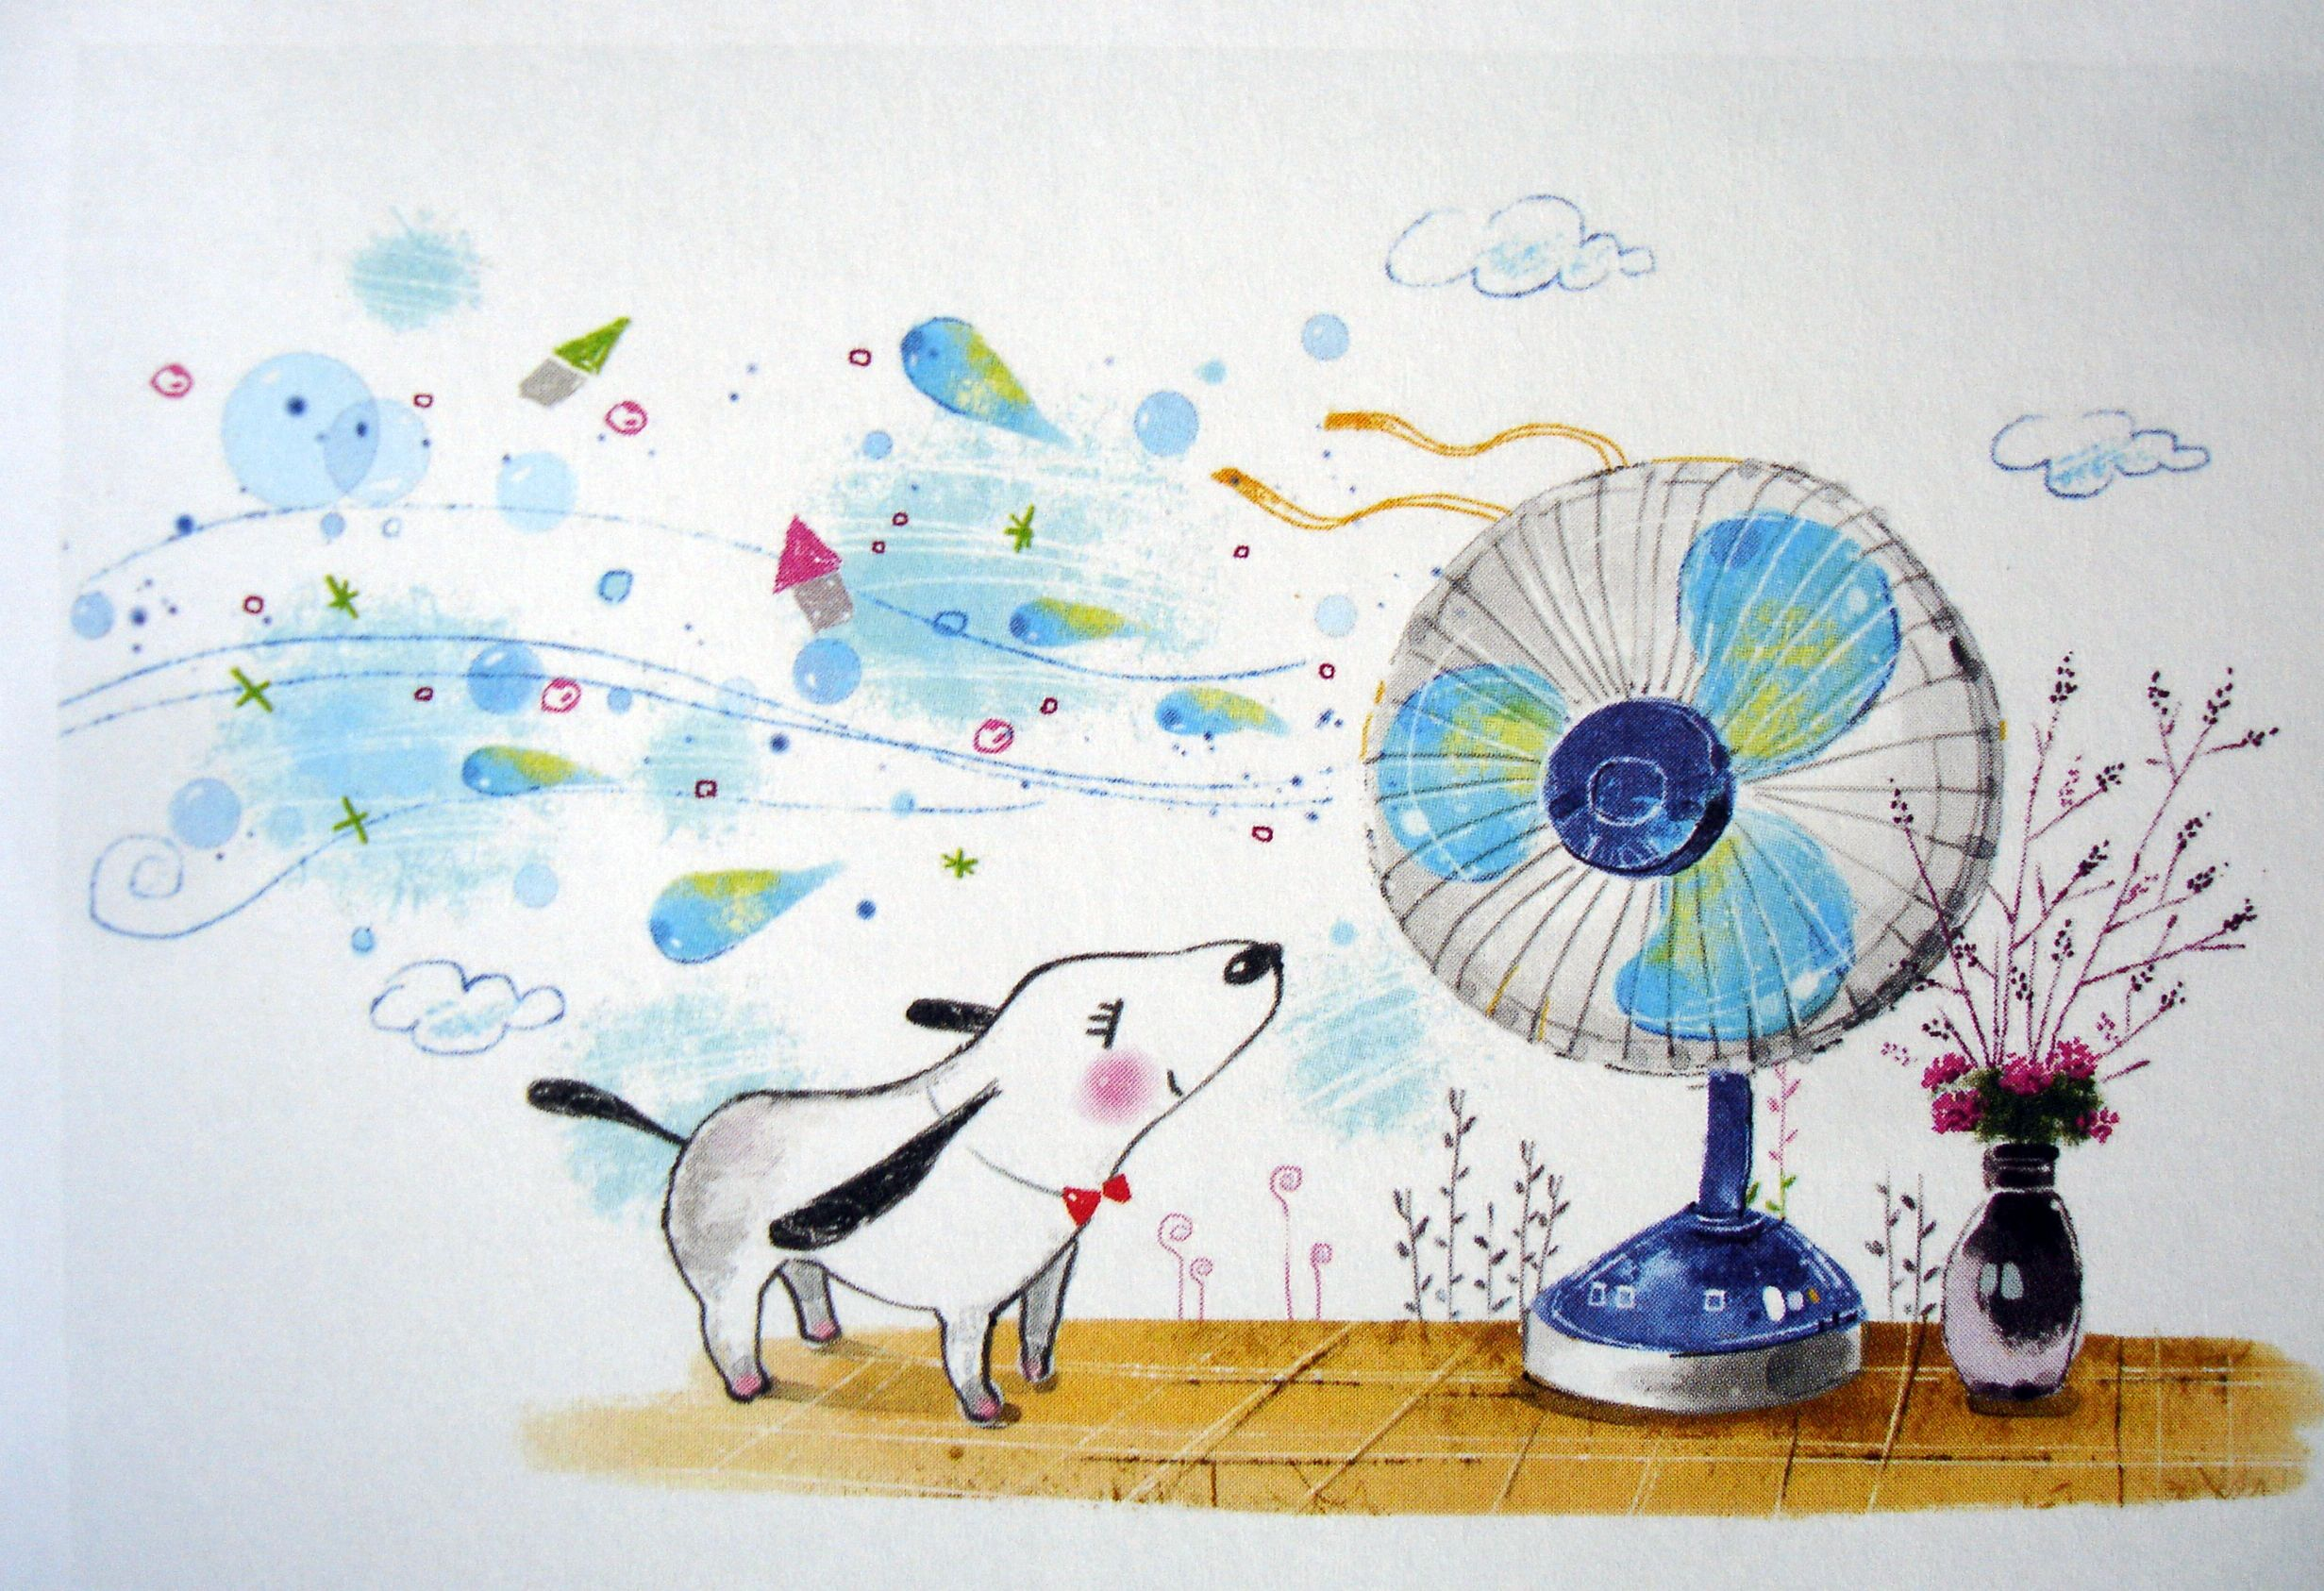 From the book Celebrating Dogs